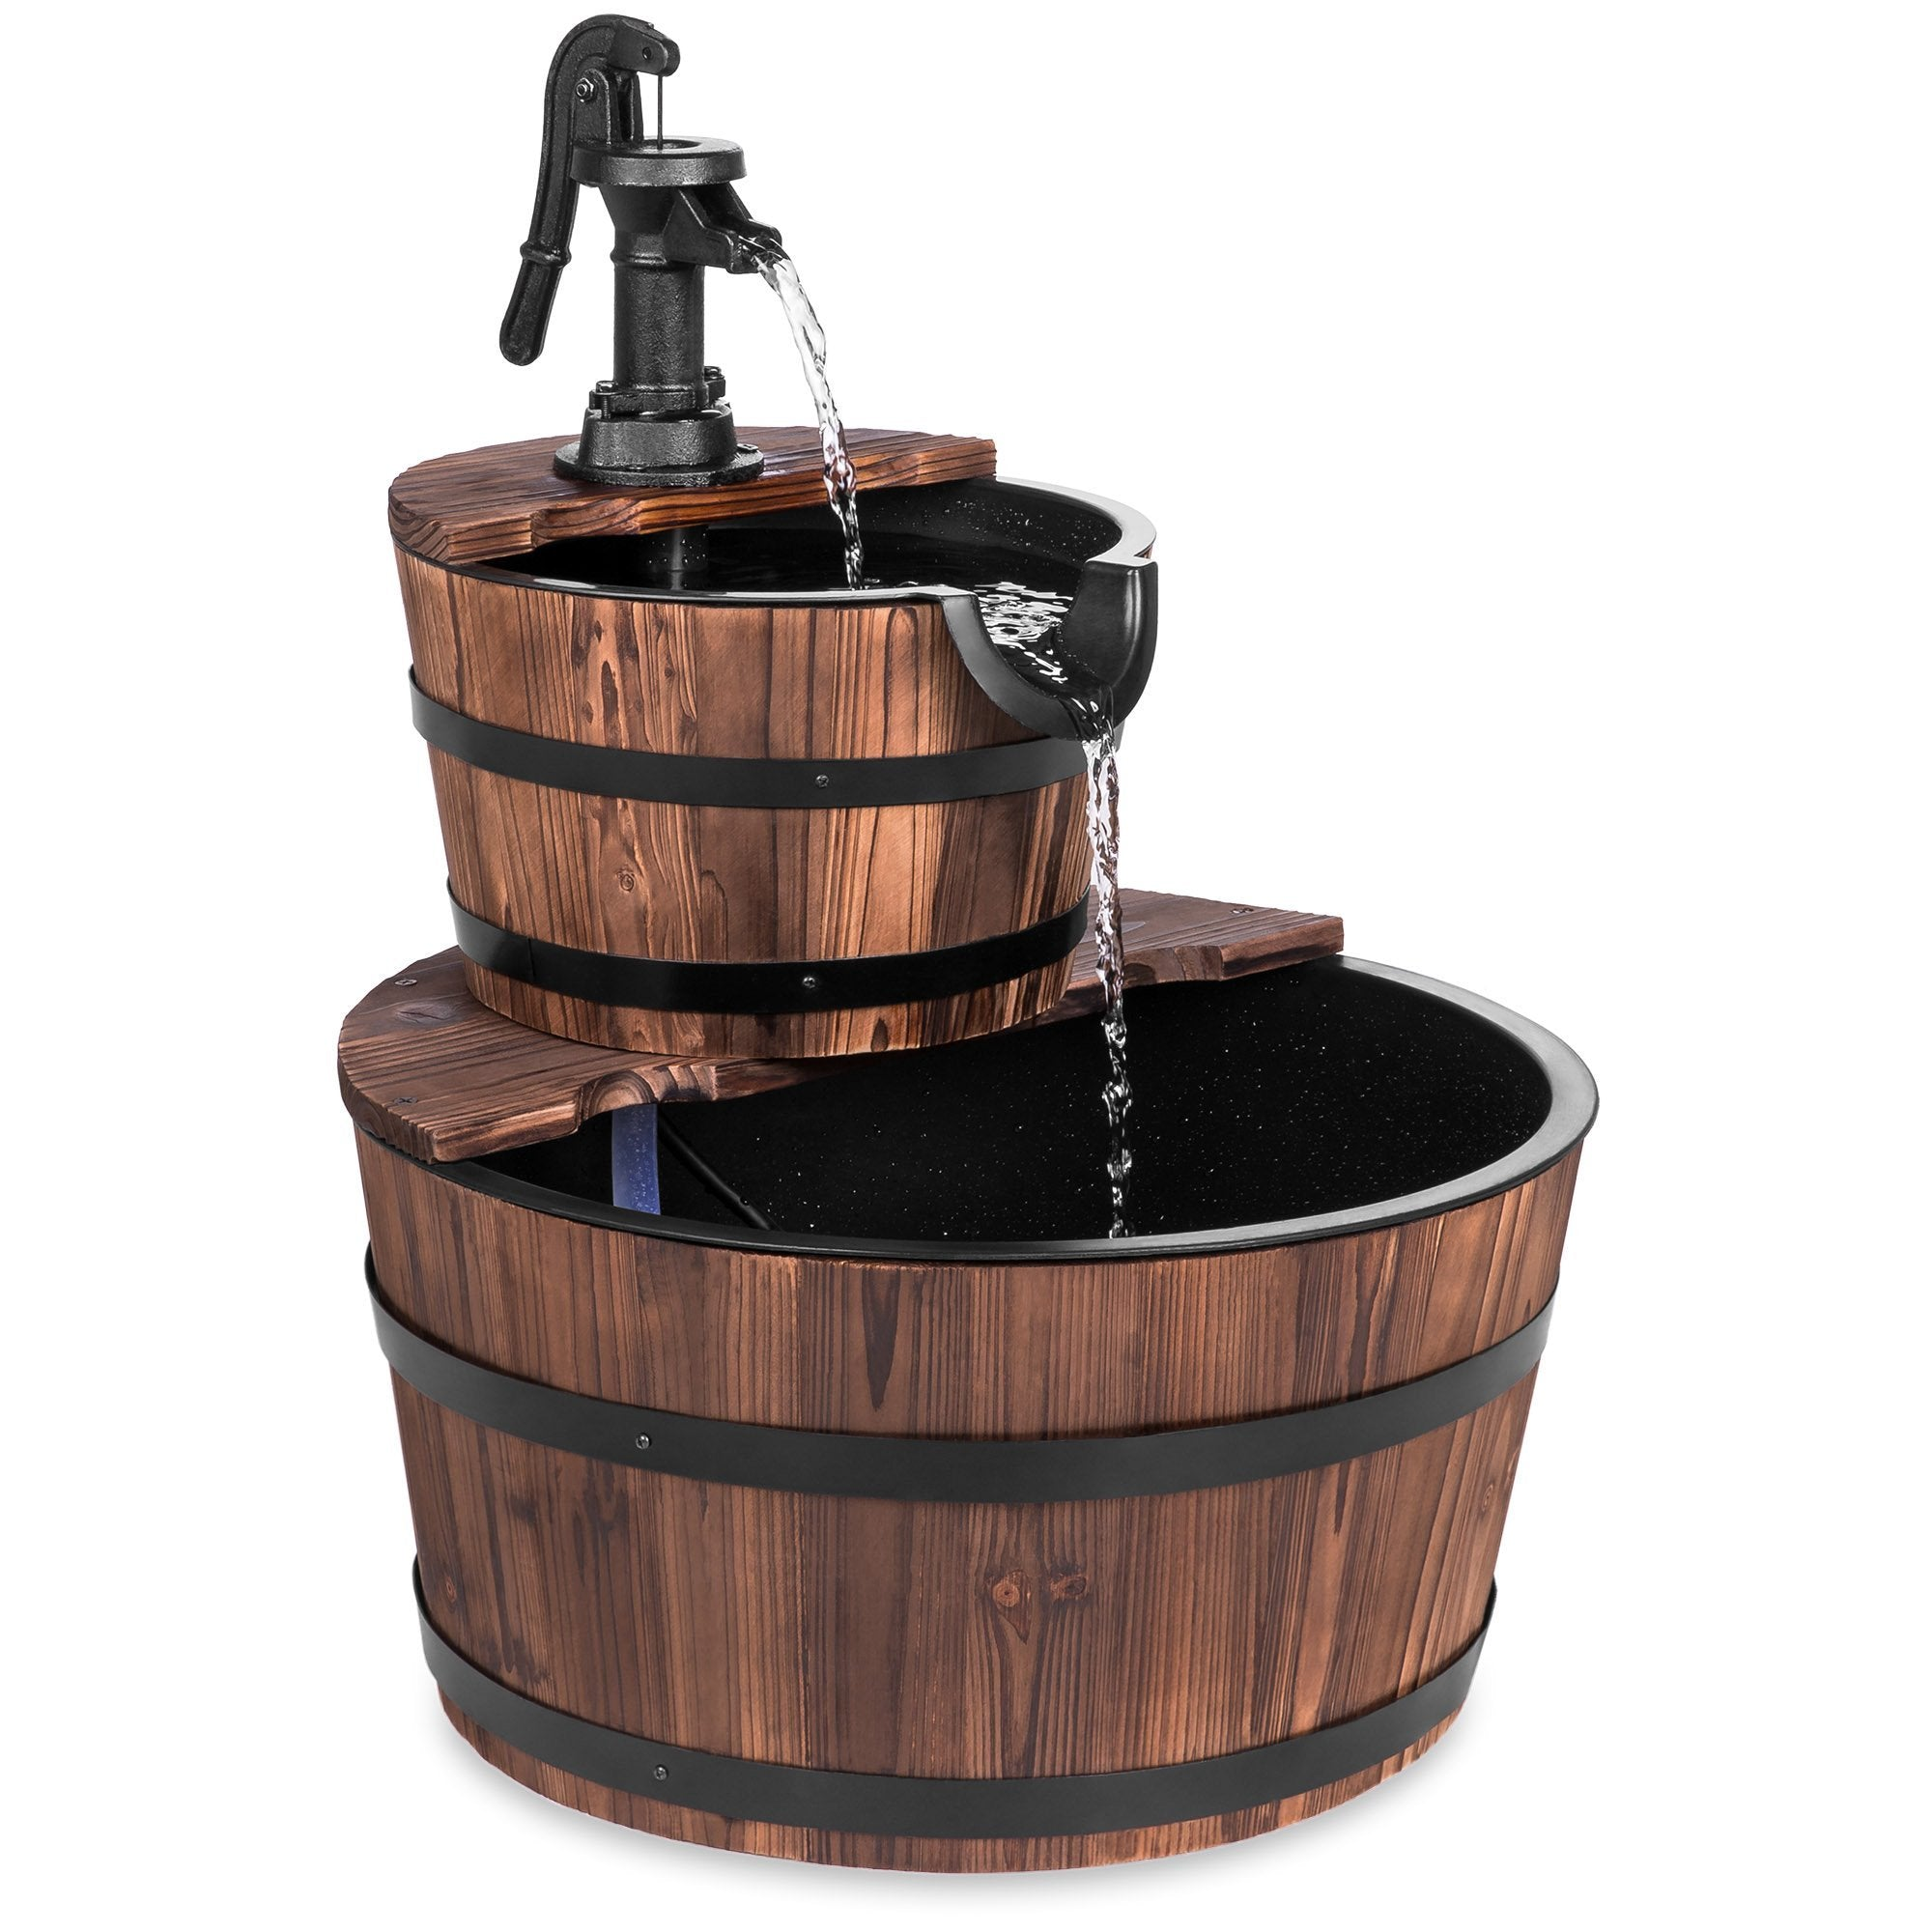 Best Choice Products Outdoor Garden Decor 2-Tier Wood Barrel Water Fountain W/ Pump - Brown